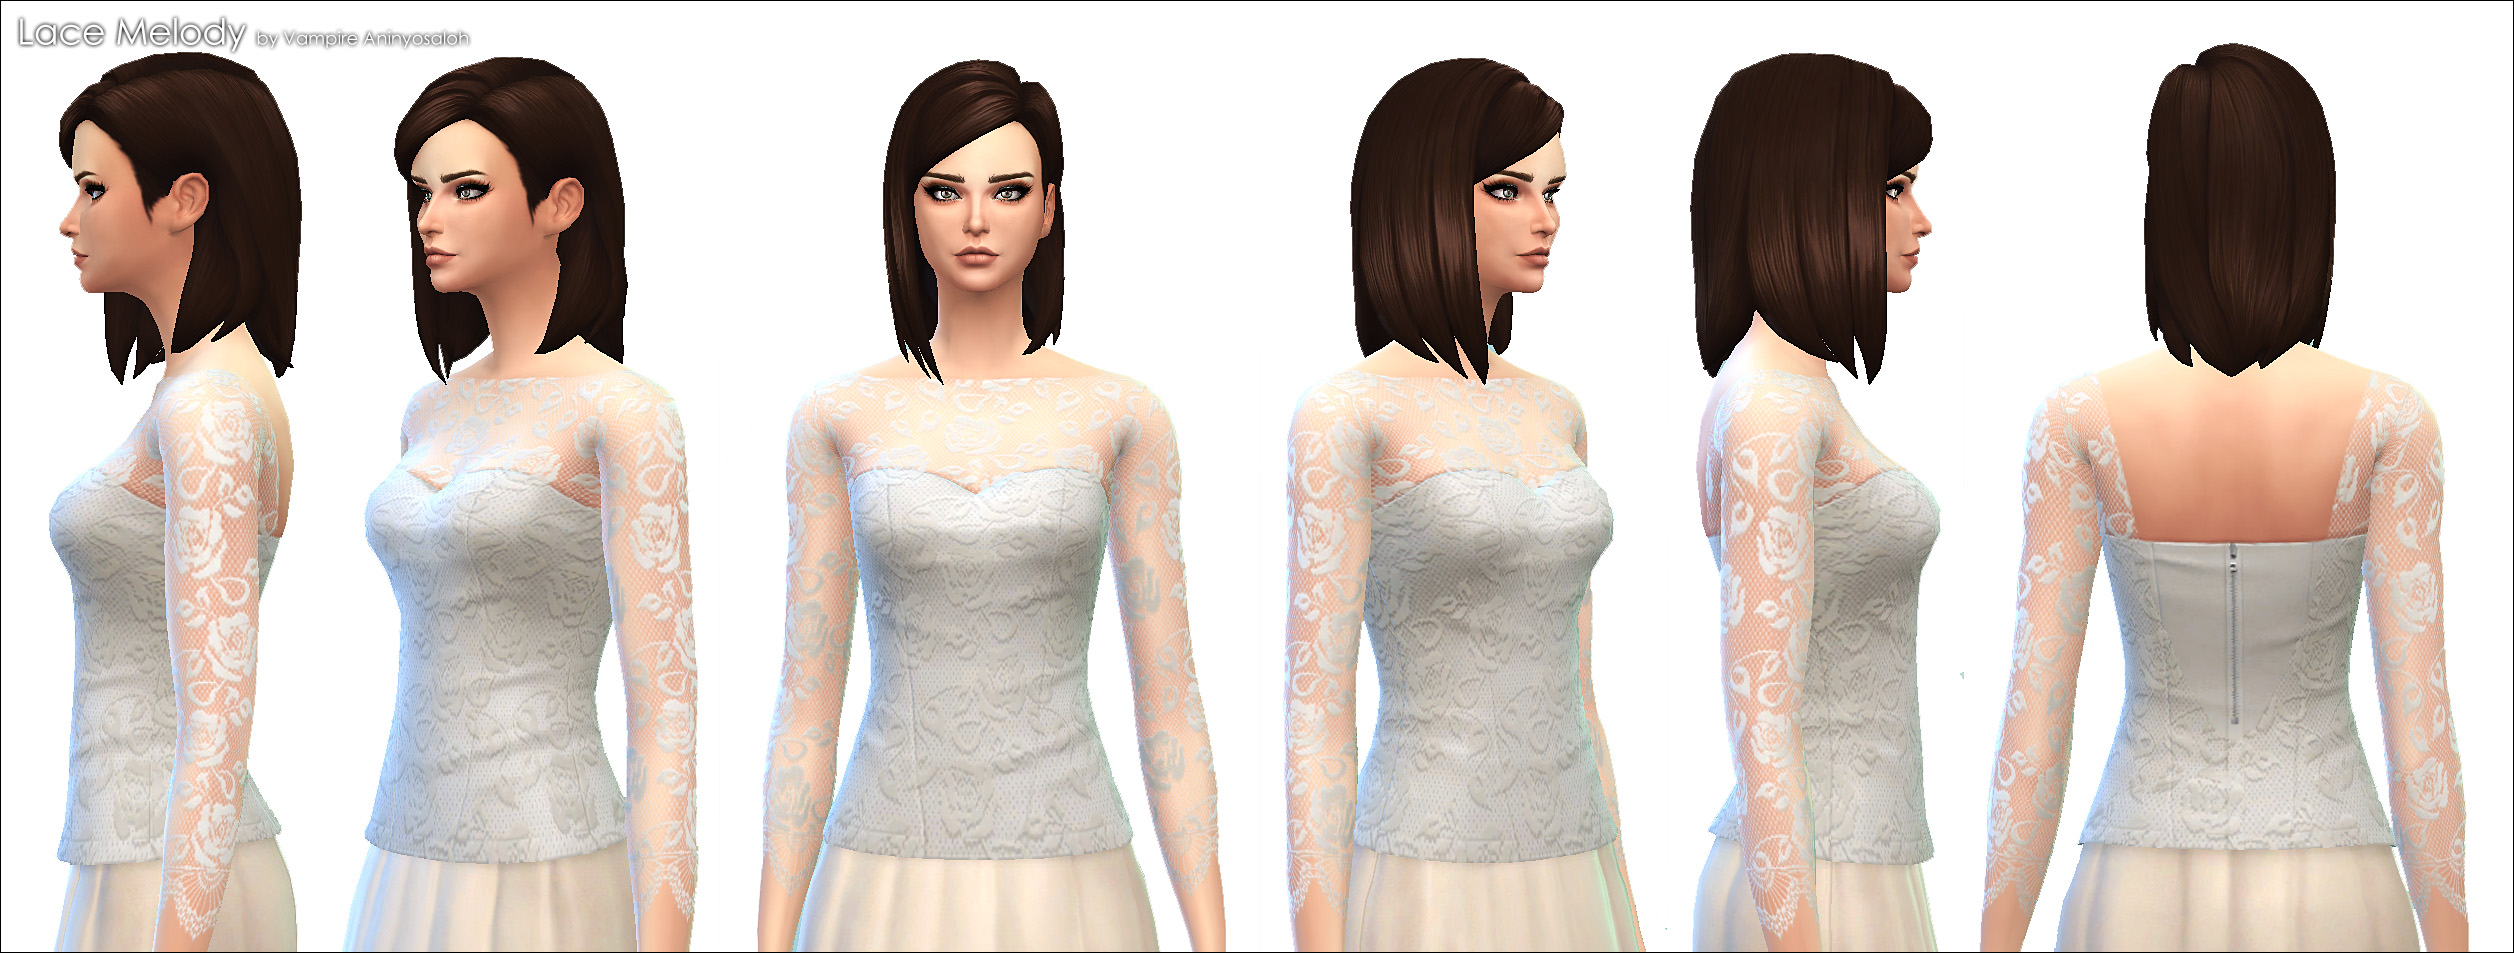 Lace Melody Blouse by Vampire_aninyosaloh